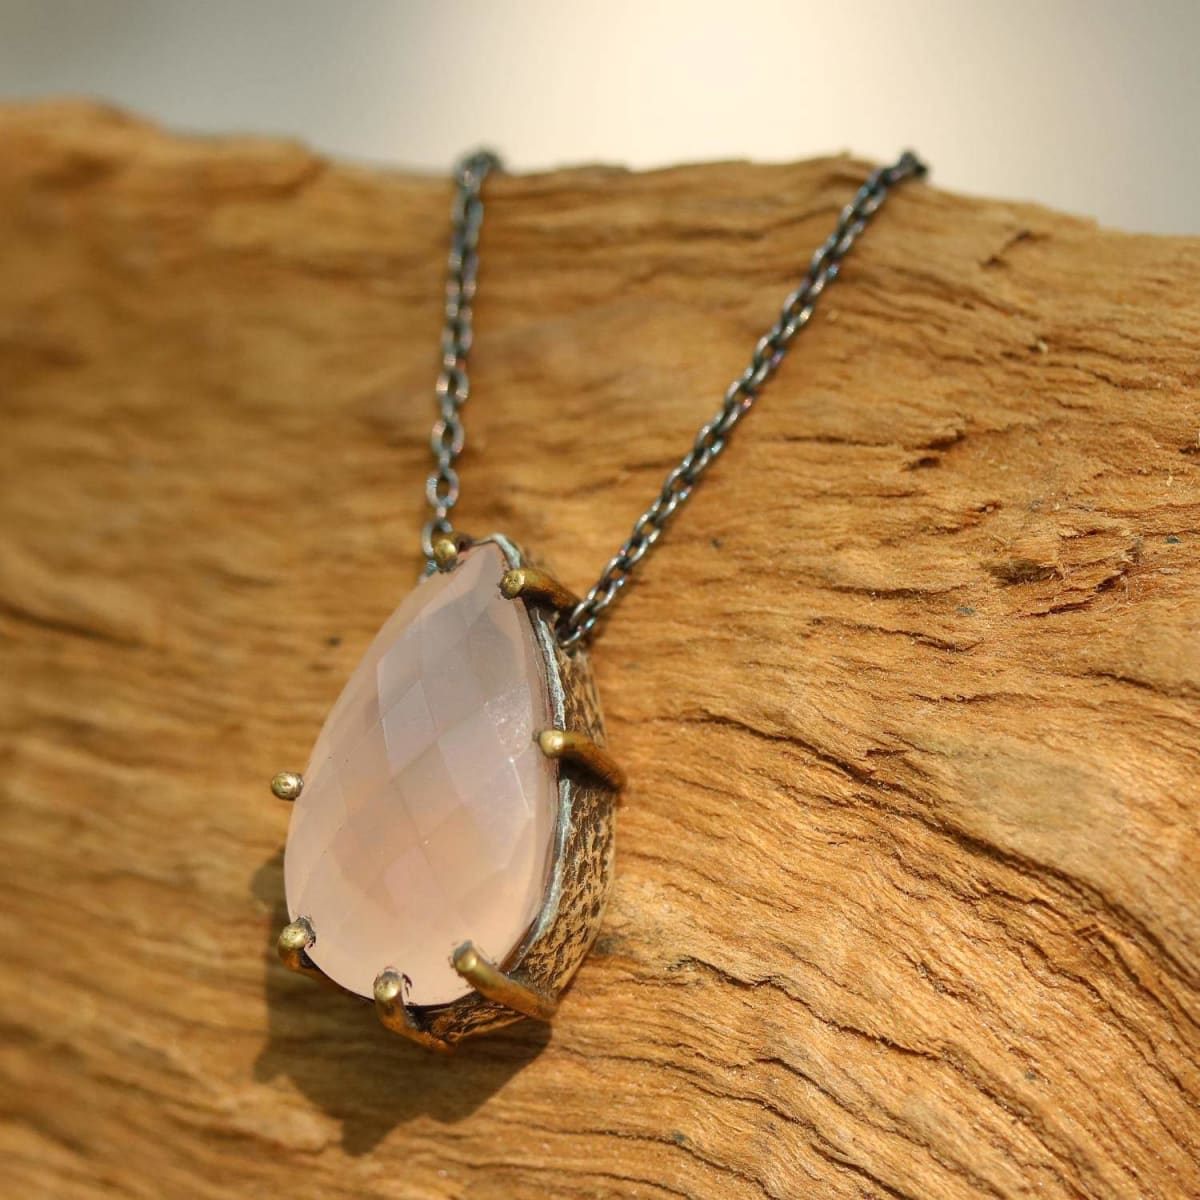 Silver pendant necklace with faceted rose quartz in silver bezel setting featuring polished brass prongs - by Metal Studio Jewelry